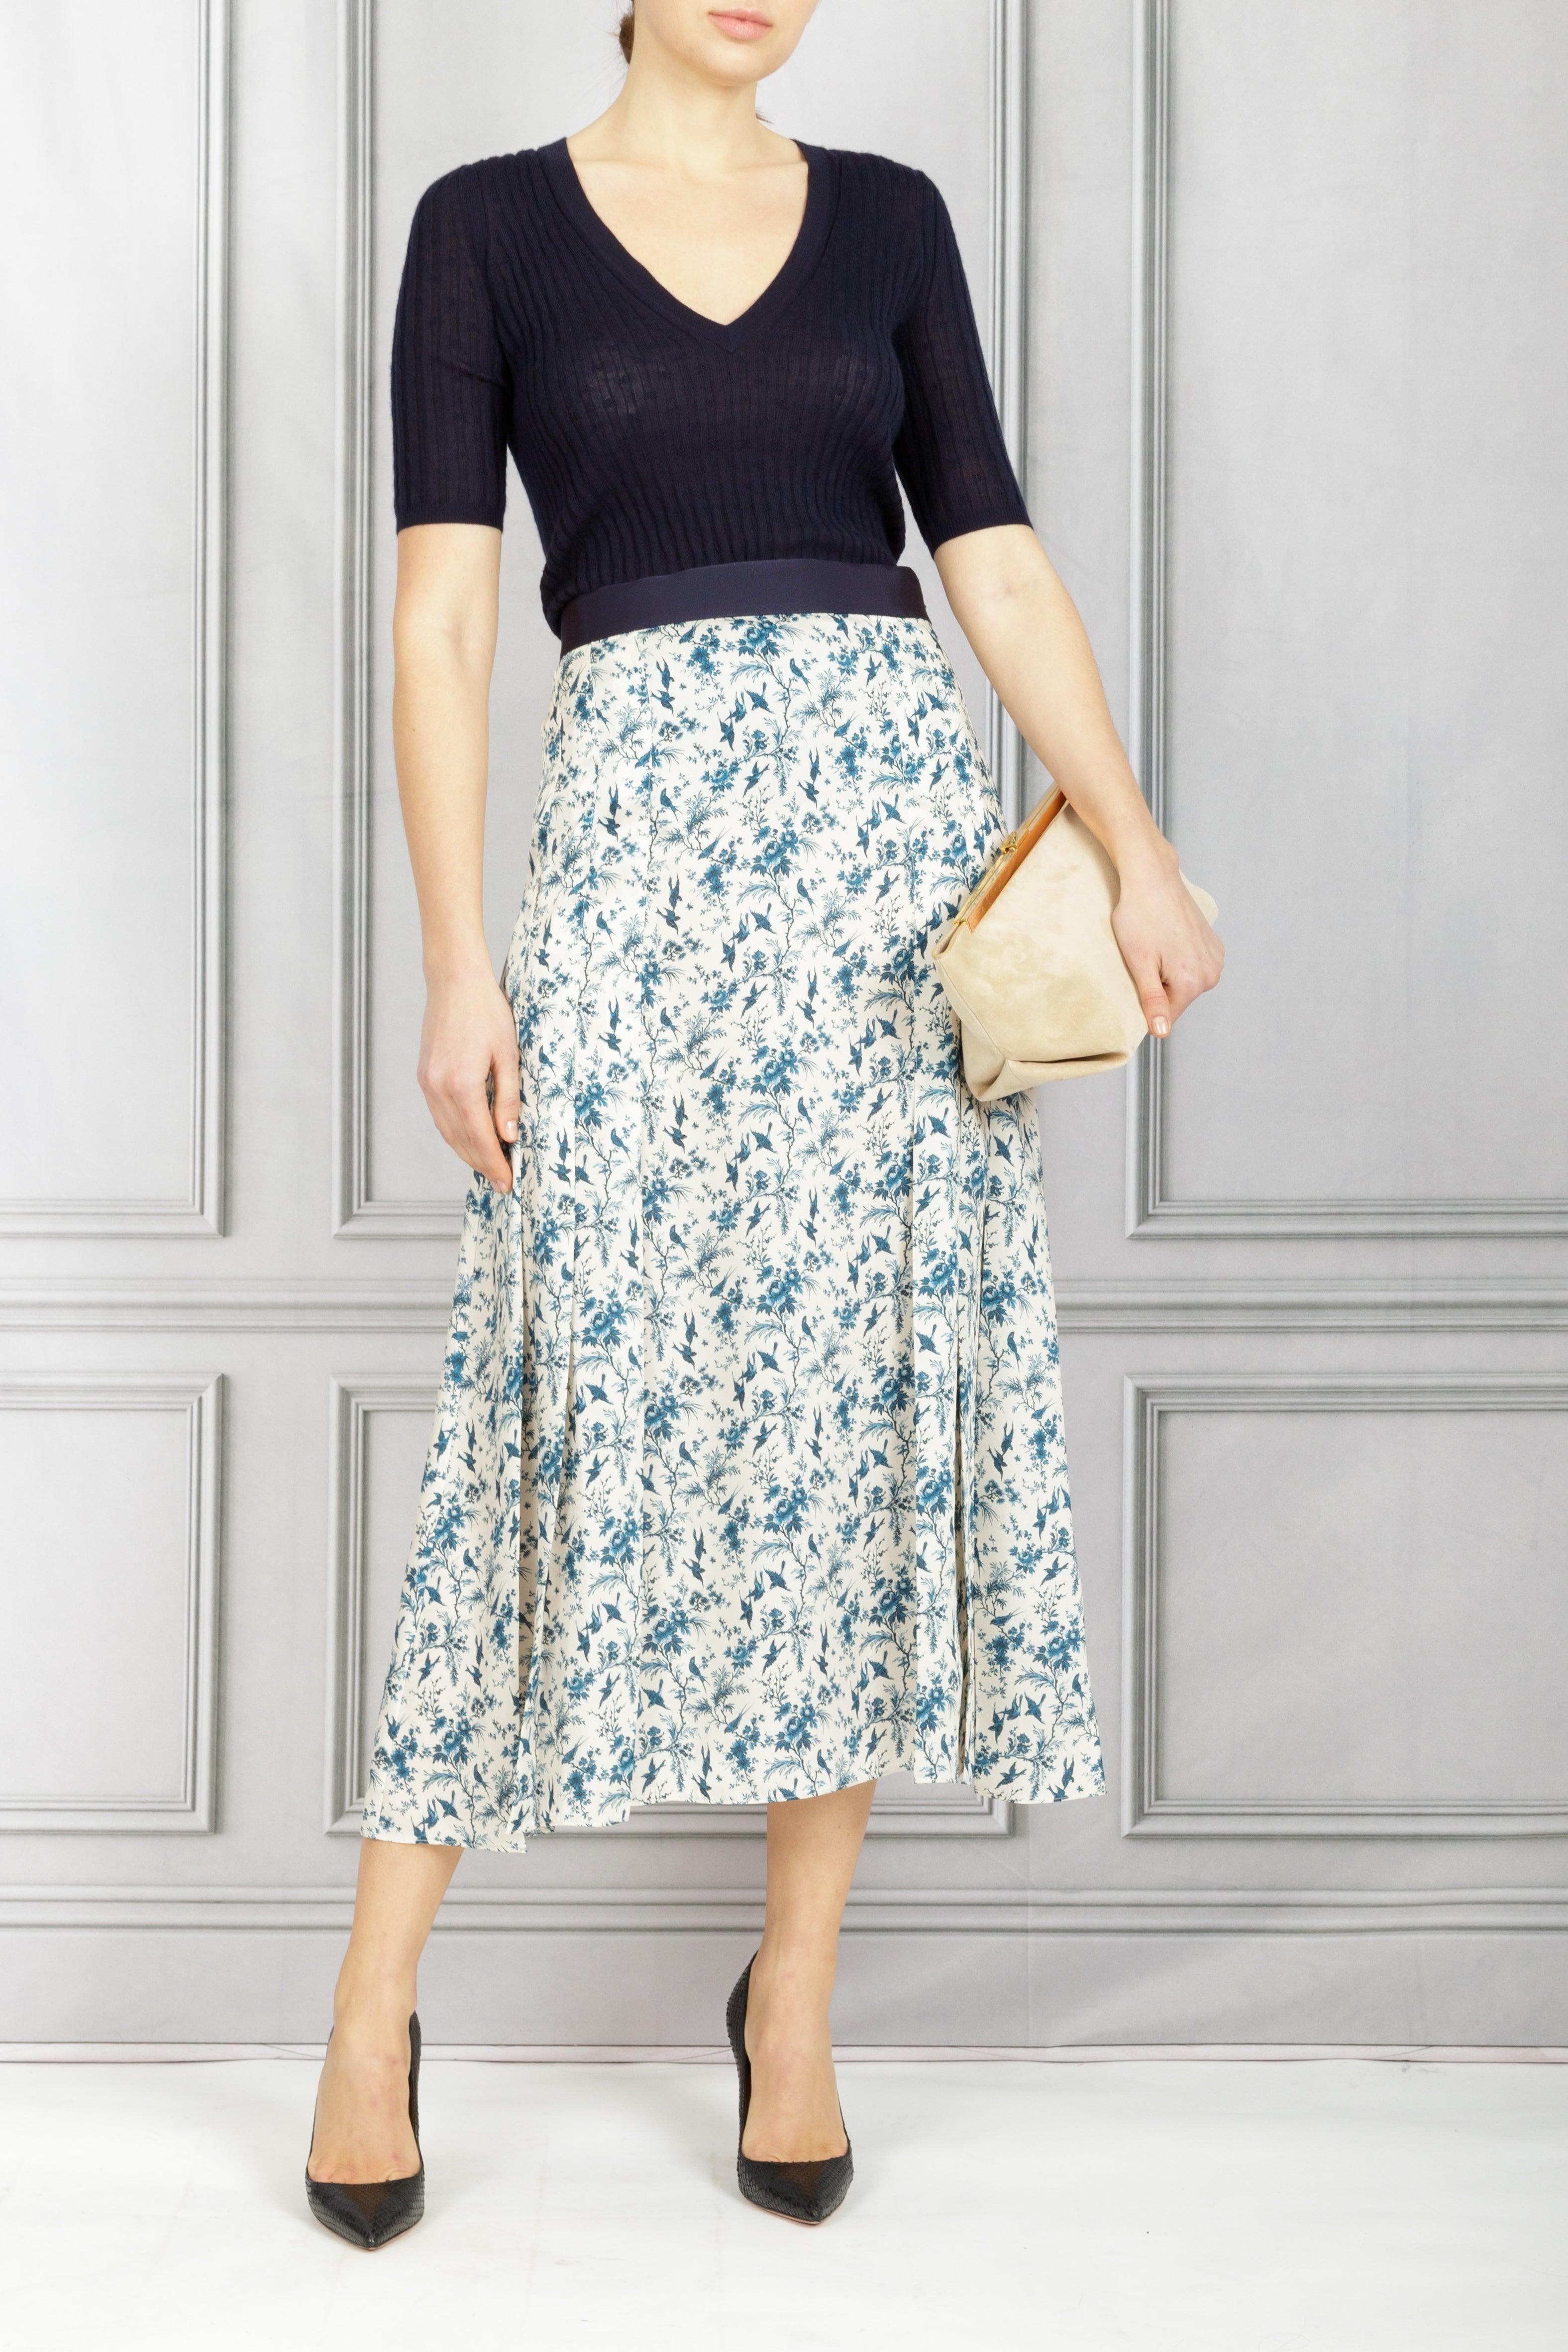 Pleat Detail Recycled Twill Midi Skirt - Toile de Jouy